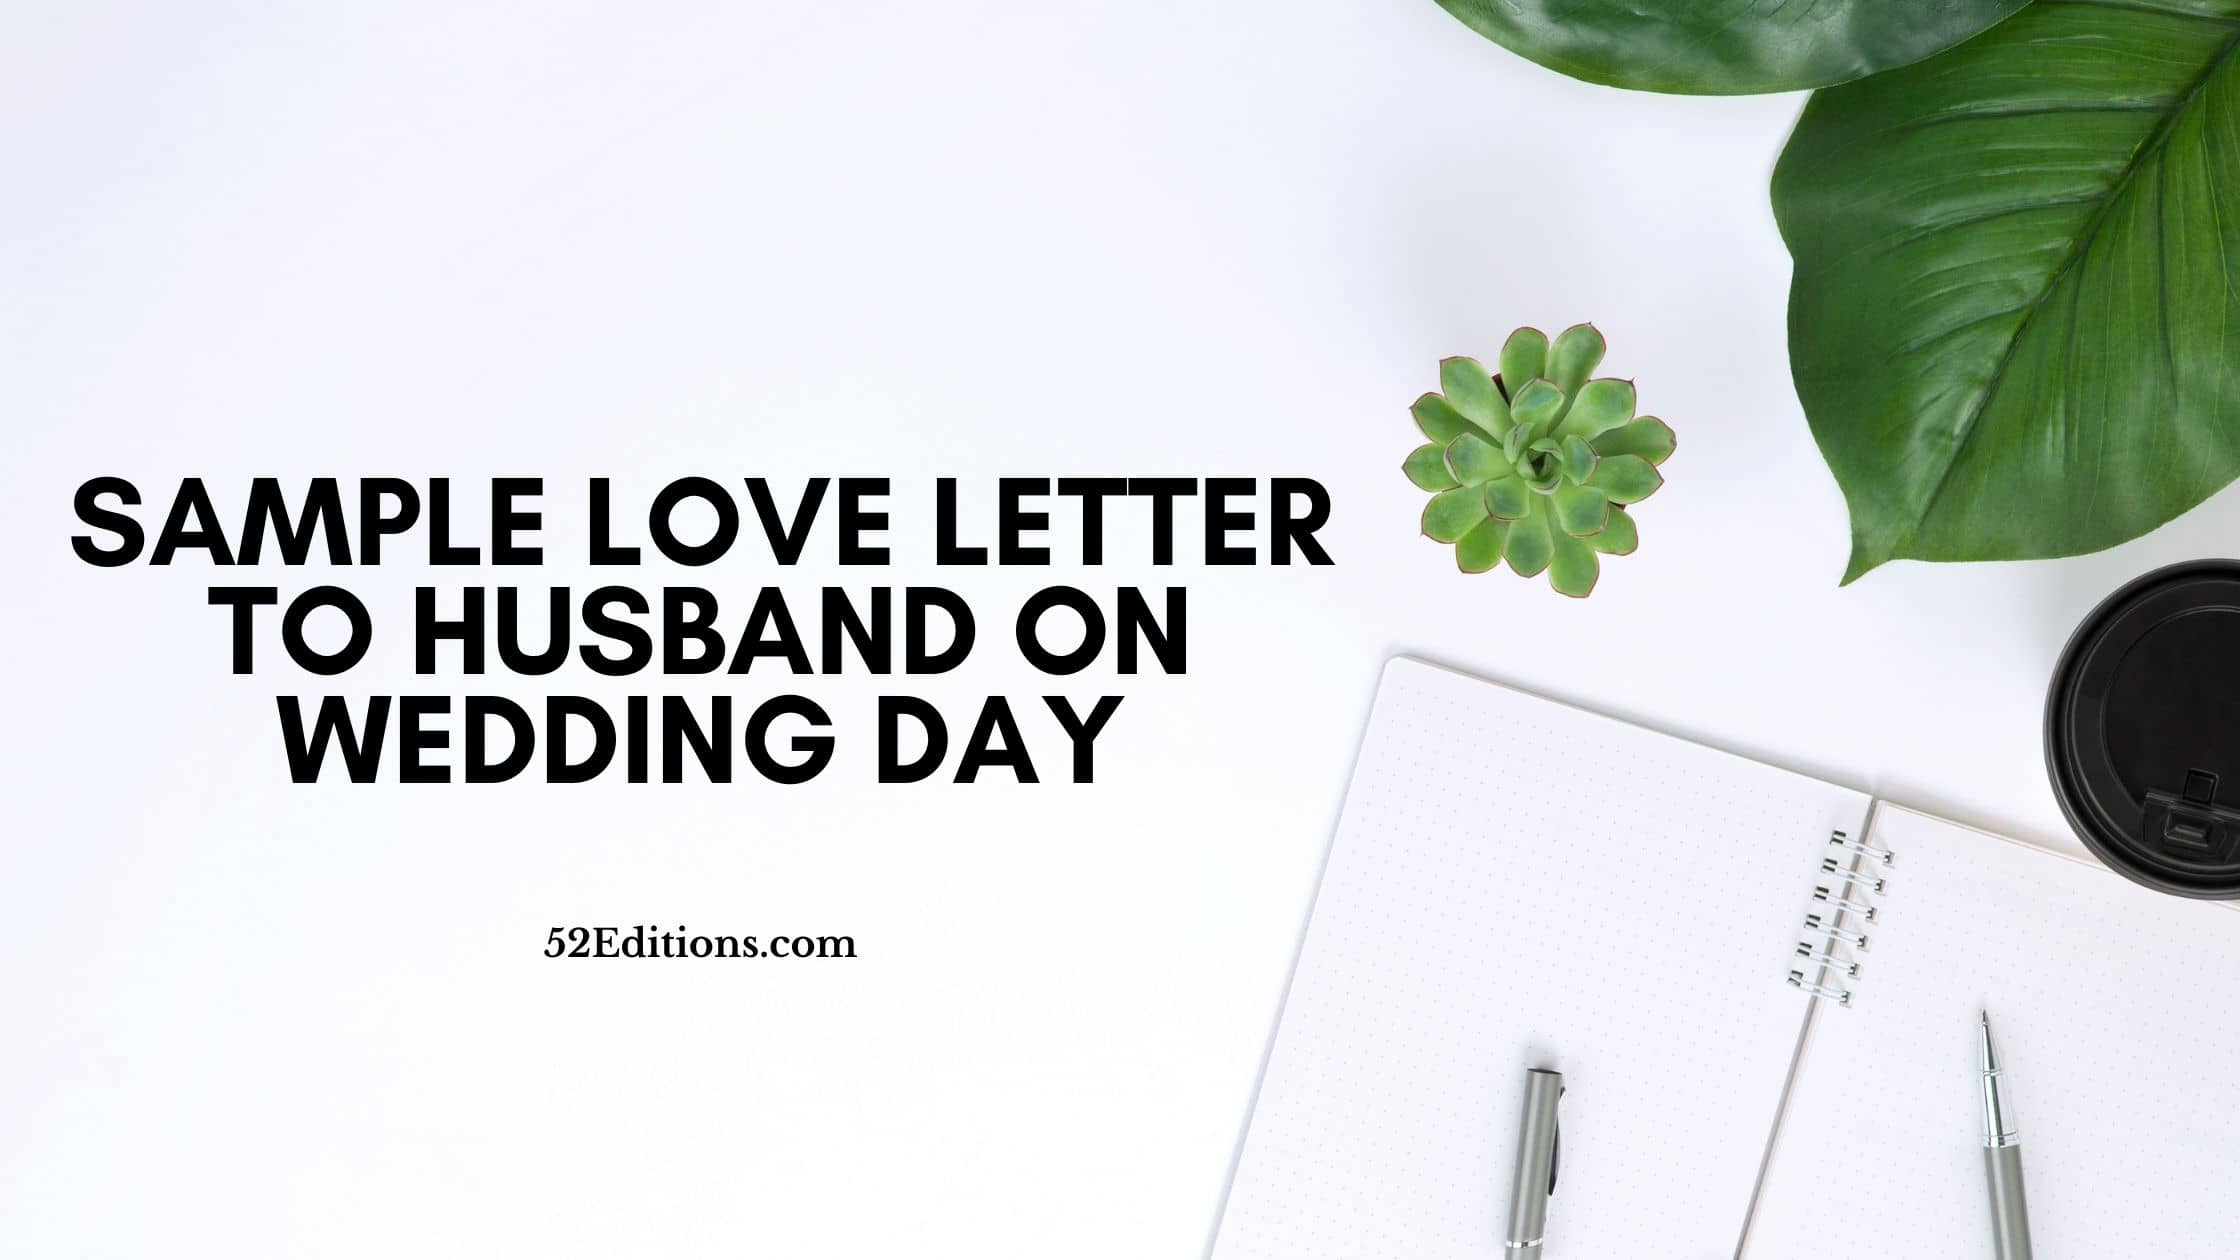 Sample Love Letter To Husband On Wedding Day // FREE